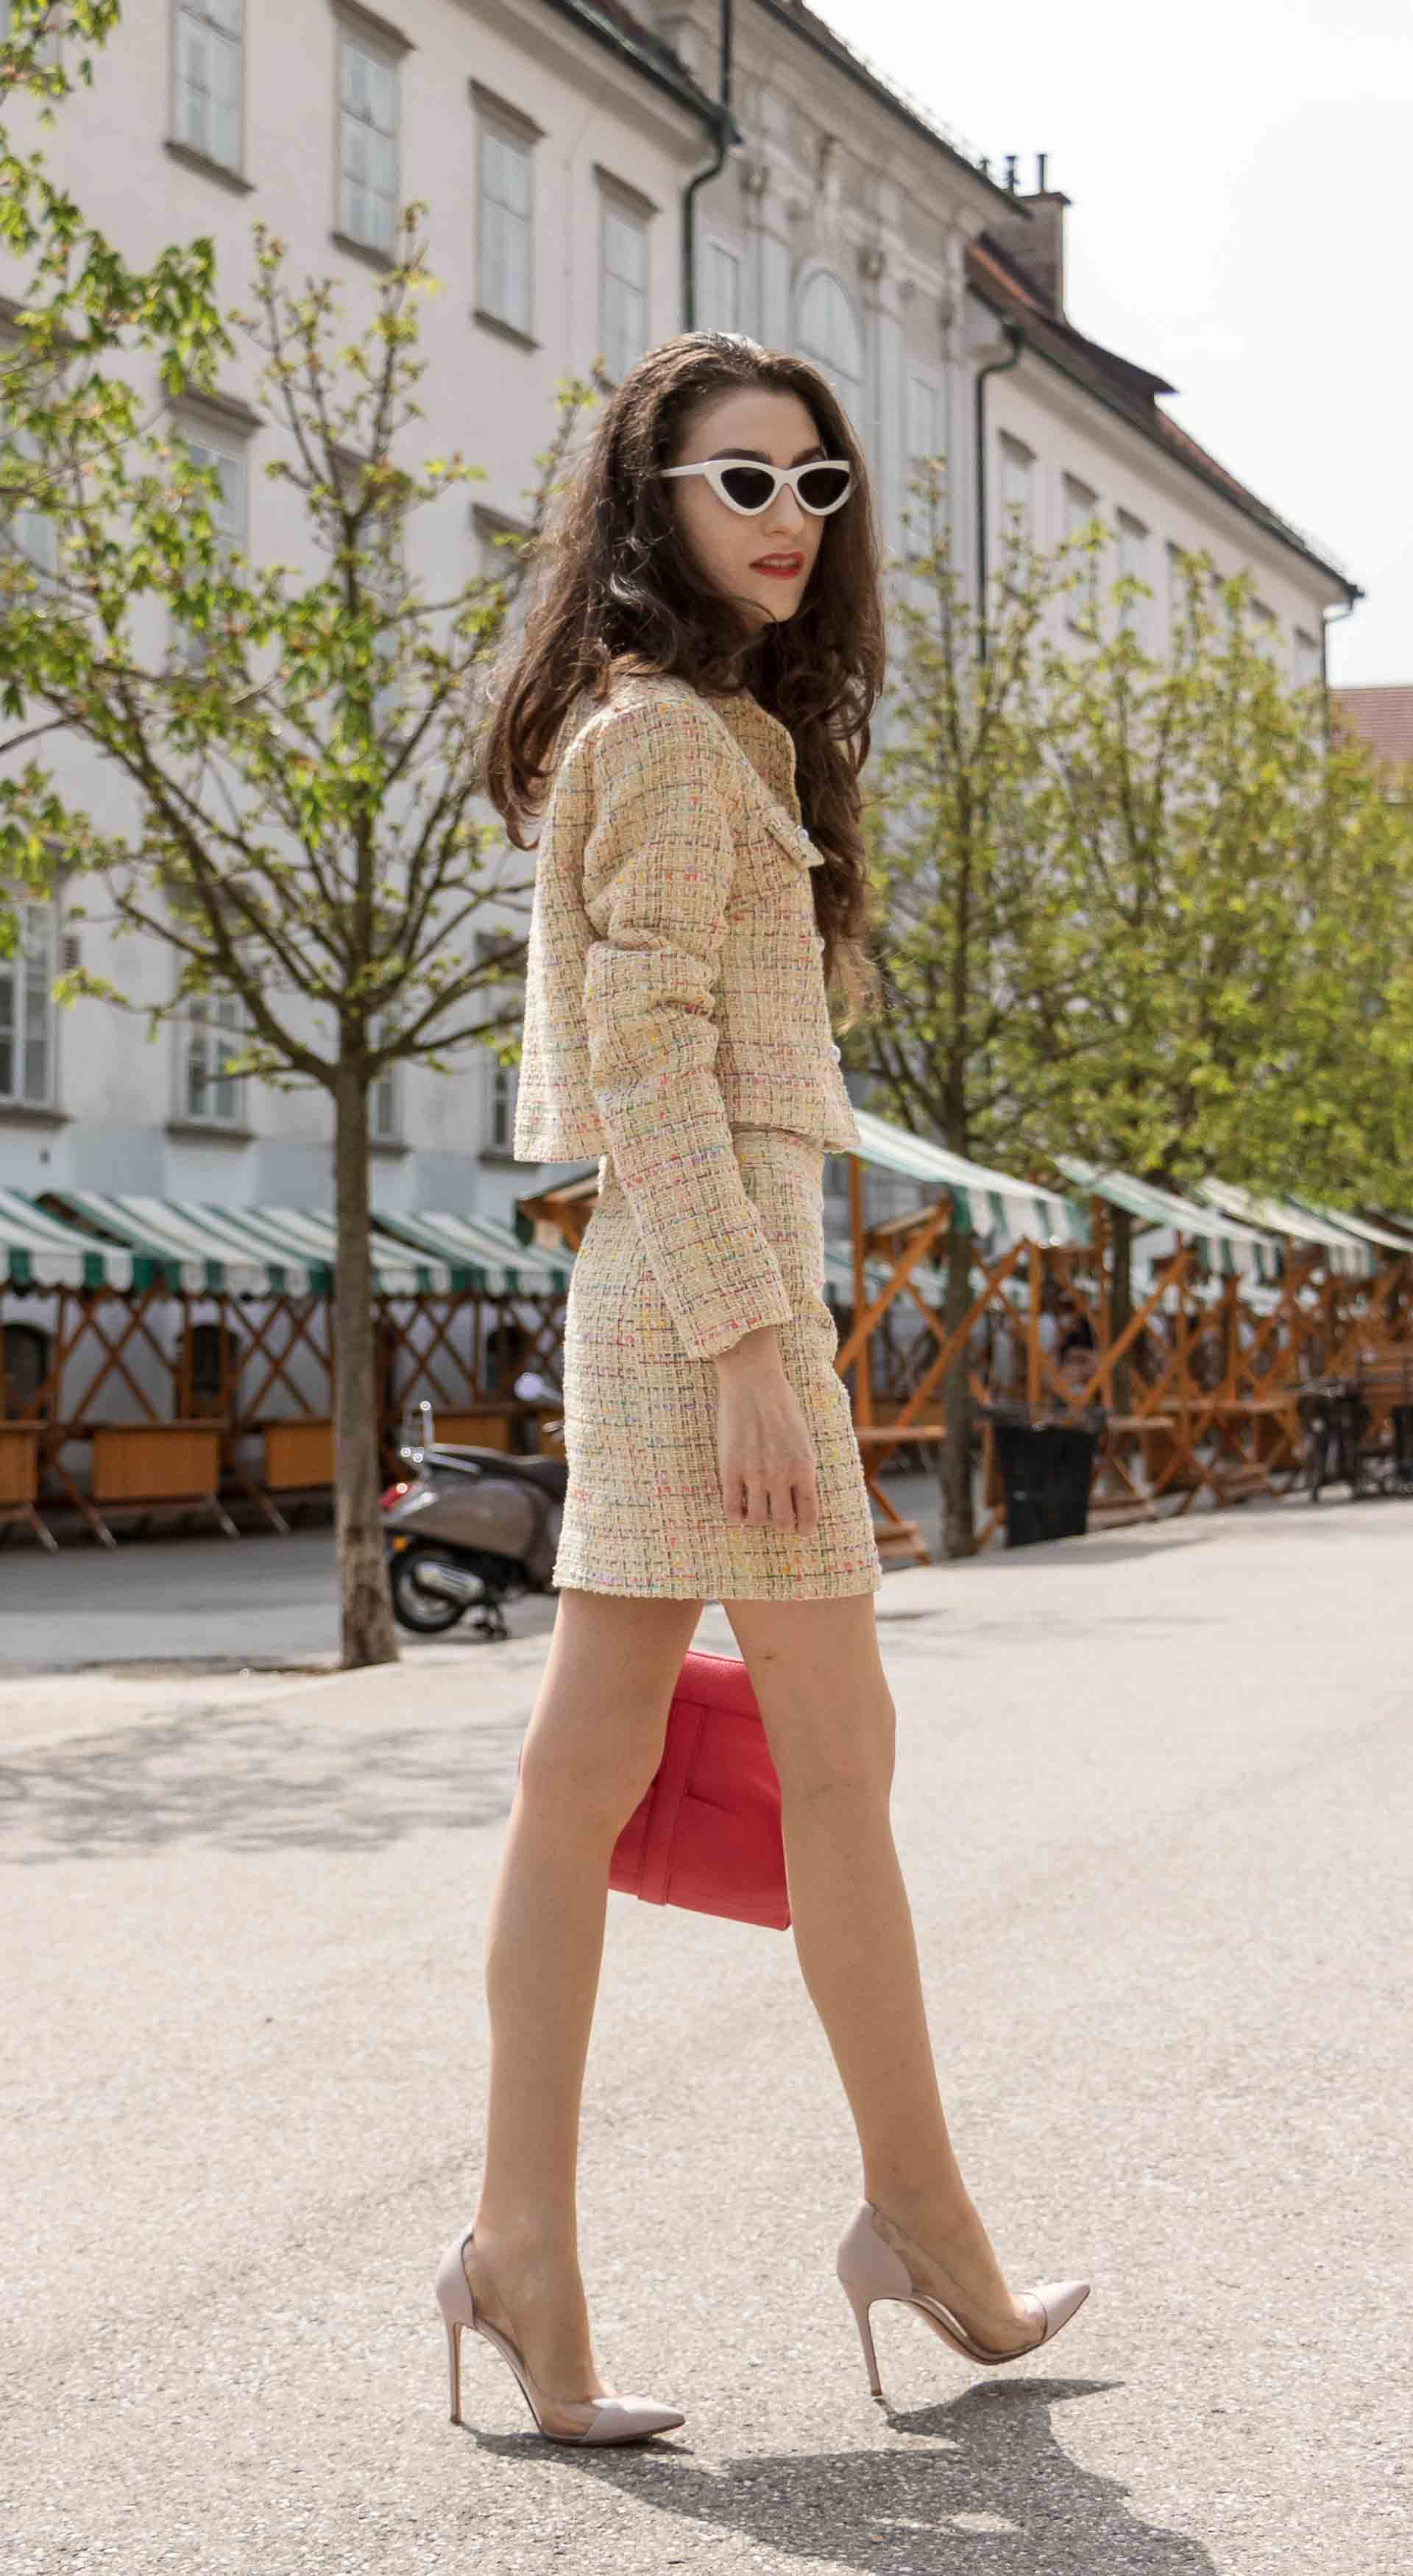 Fashion Blogger Veronika Lipar of Brunette from Wall Street wearing Storets yellow tweed mini skirt suit, Gianvito Rossi plexi pumps, See by Chloe pink top handle bag, Adam Selman x Lespecs white Lolita sunglasses walking on the street in Ljubljana